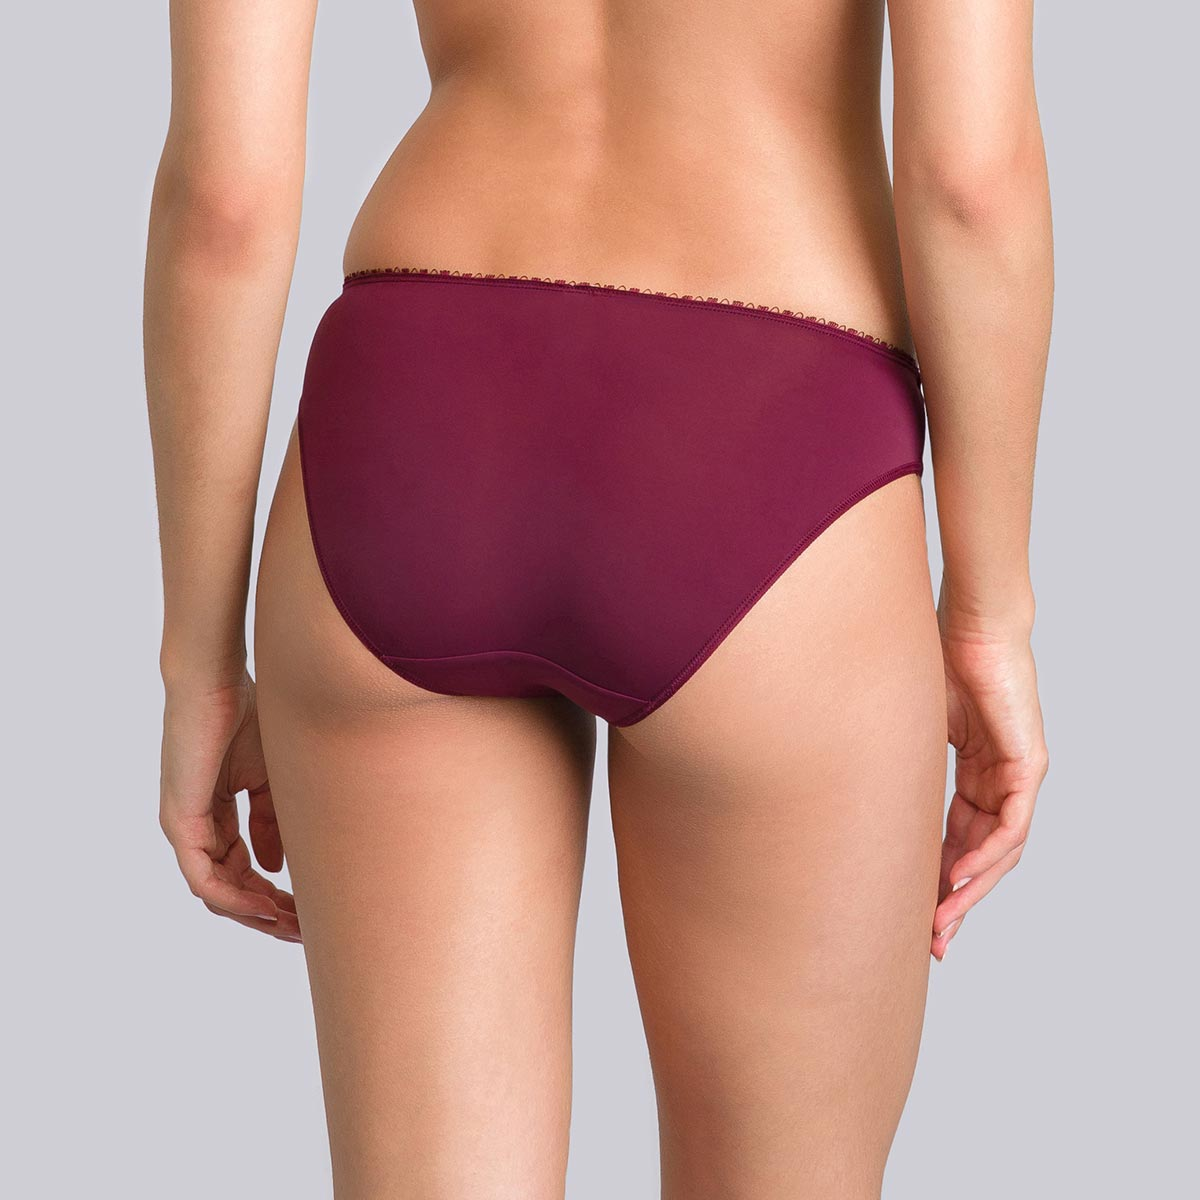 Slip Mini viola bordeaux - Flowery Lace - PLAYTEX